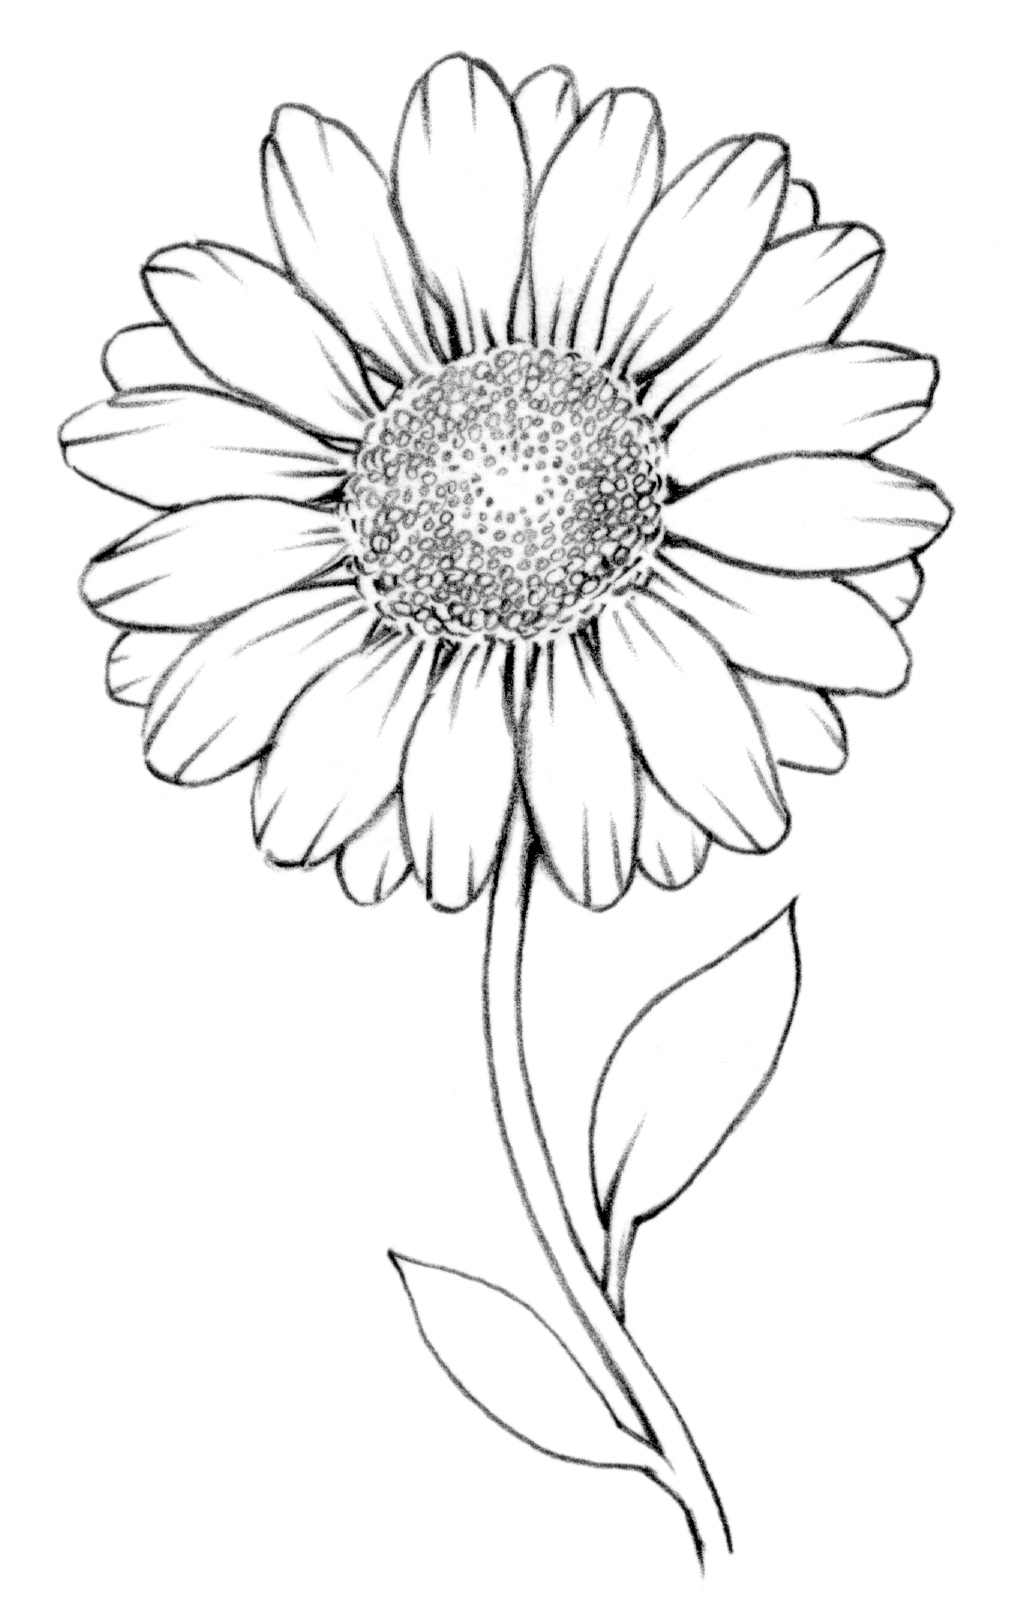 1014x1617 Daisy Flower Drawing How To Draw A Daisy Flower (Daisies) In Easy